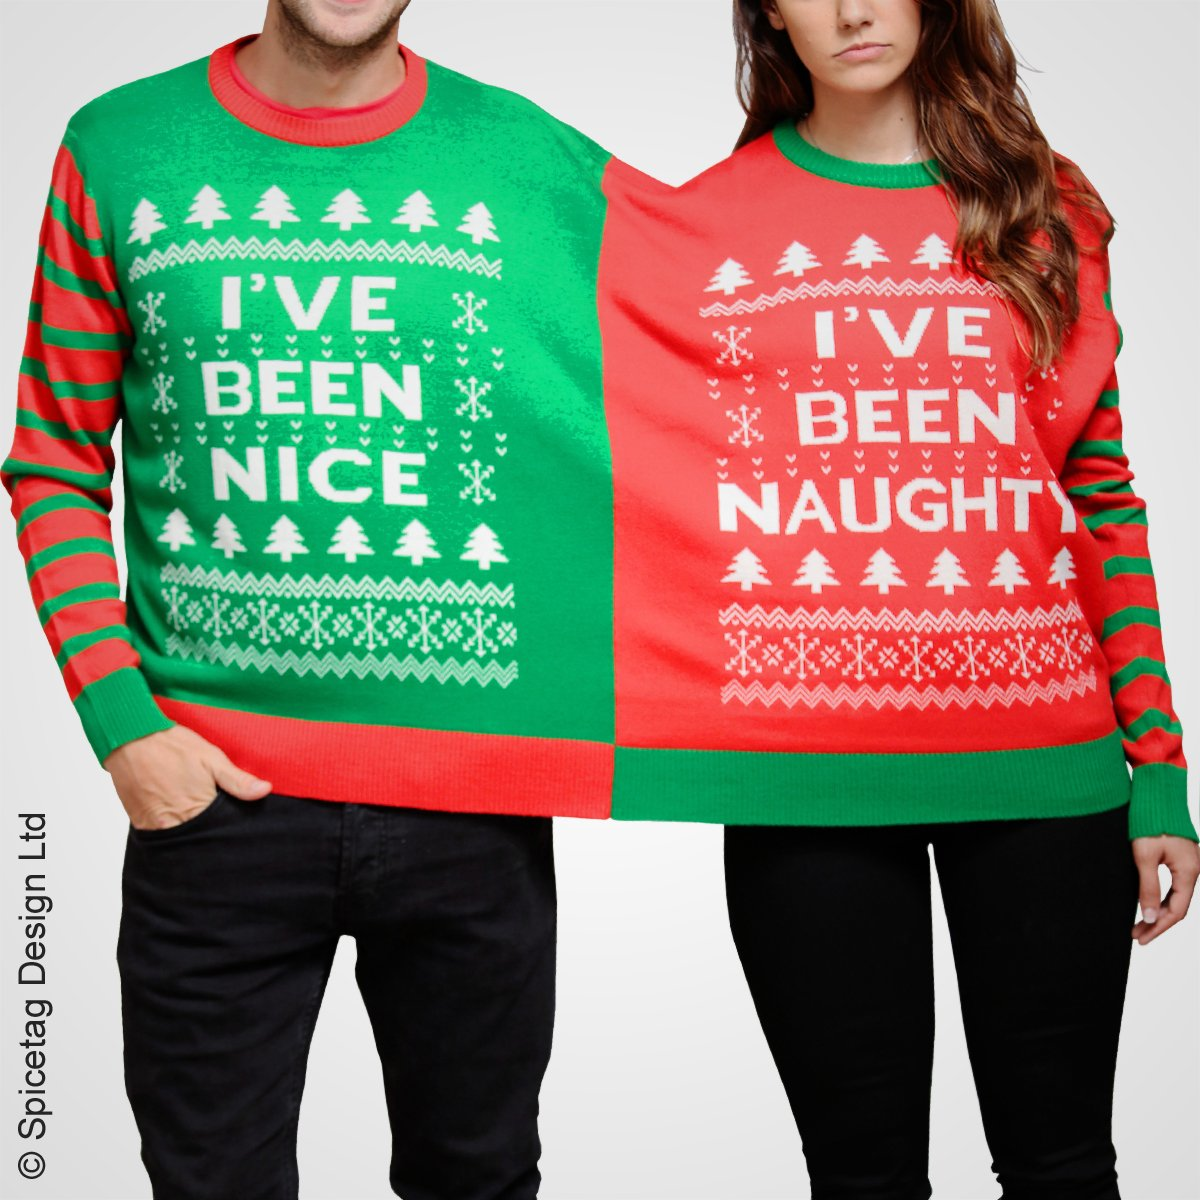 double_christmas_crimbo_xmas_festive_twin_naughty_nice_jumper_sweater_sweatshirt_pullover_knitted_santa_rudolph_present